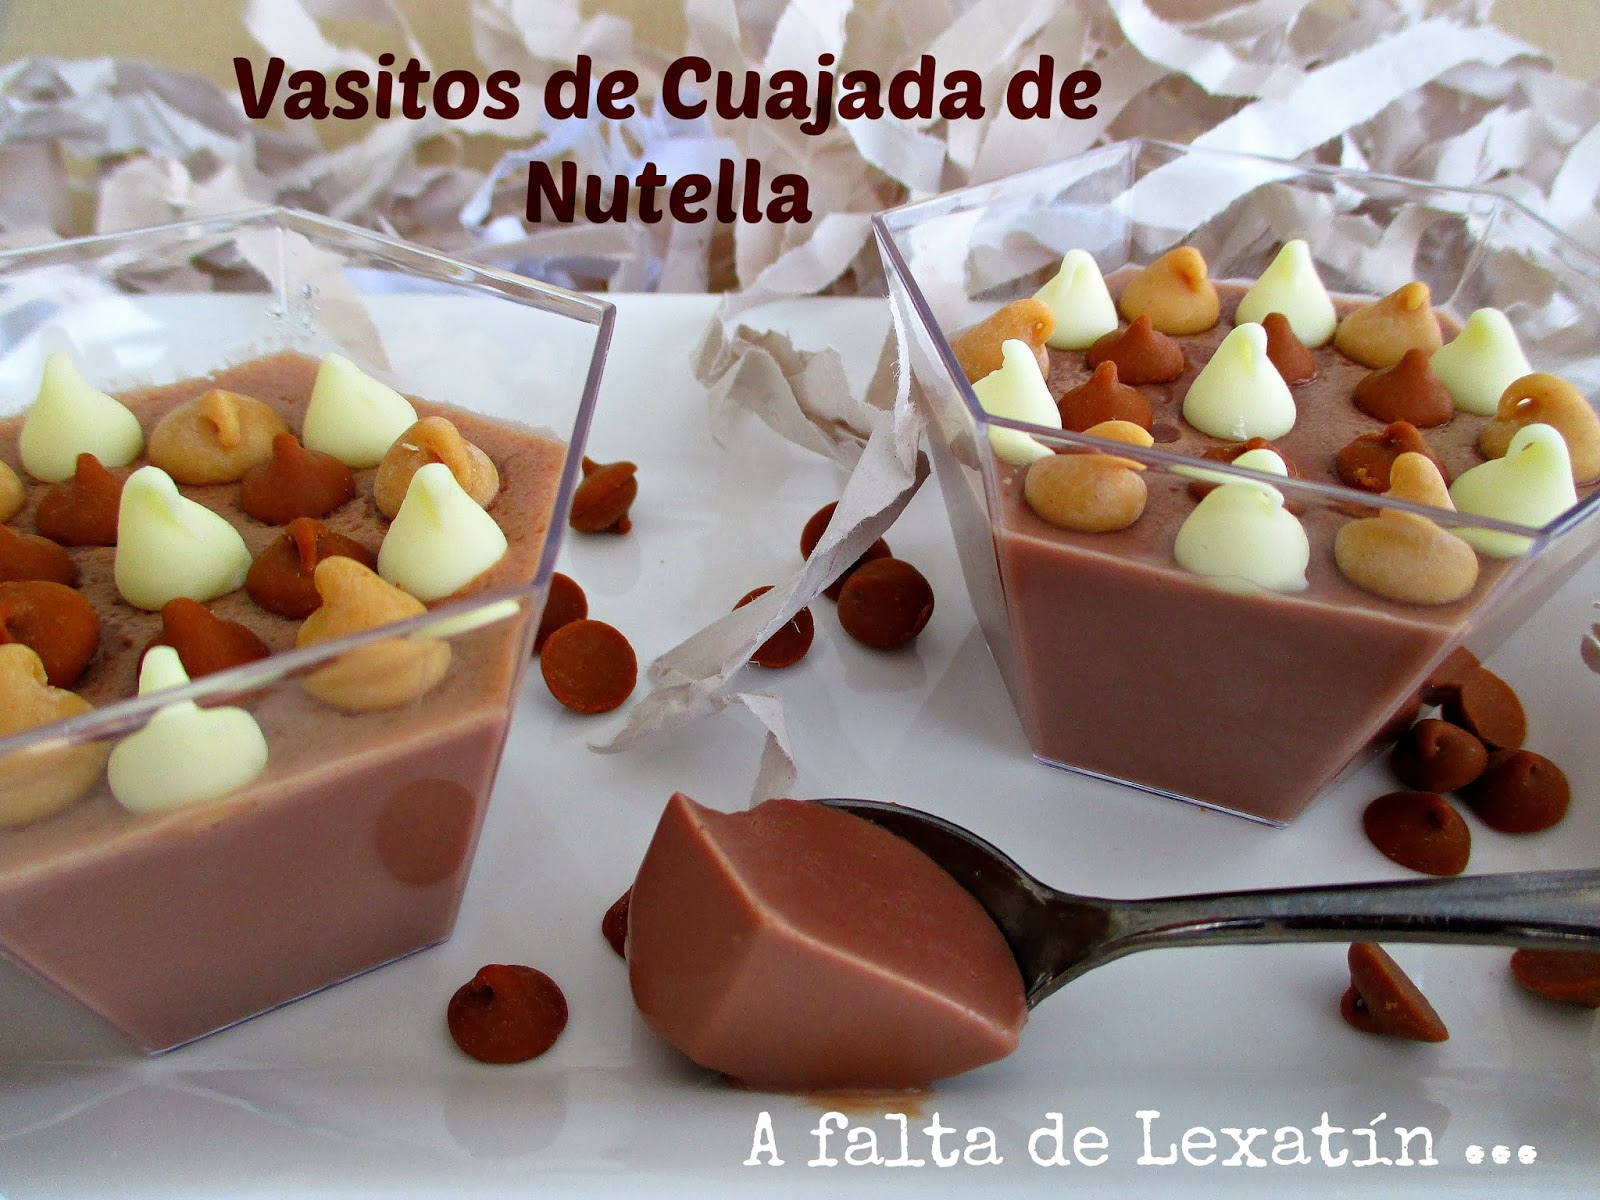 Vasitos de cuajada de Nutella